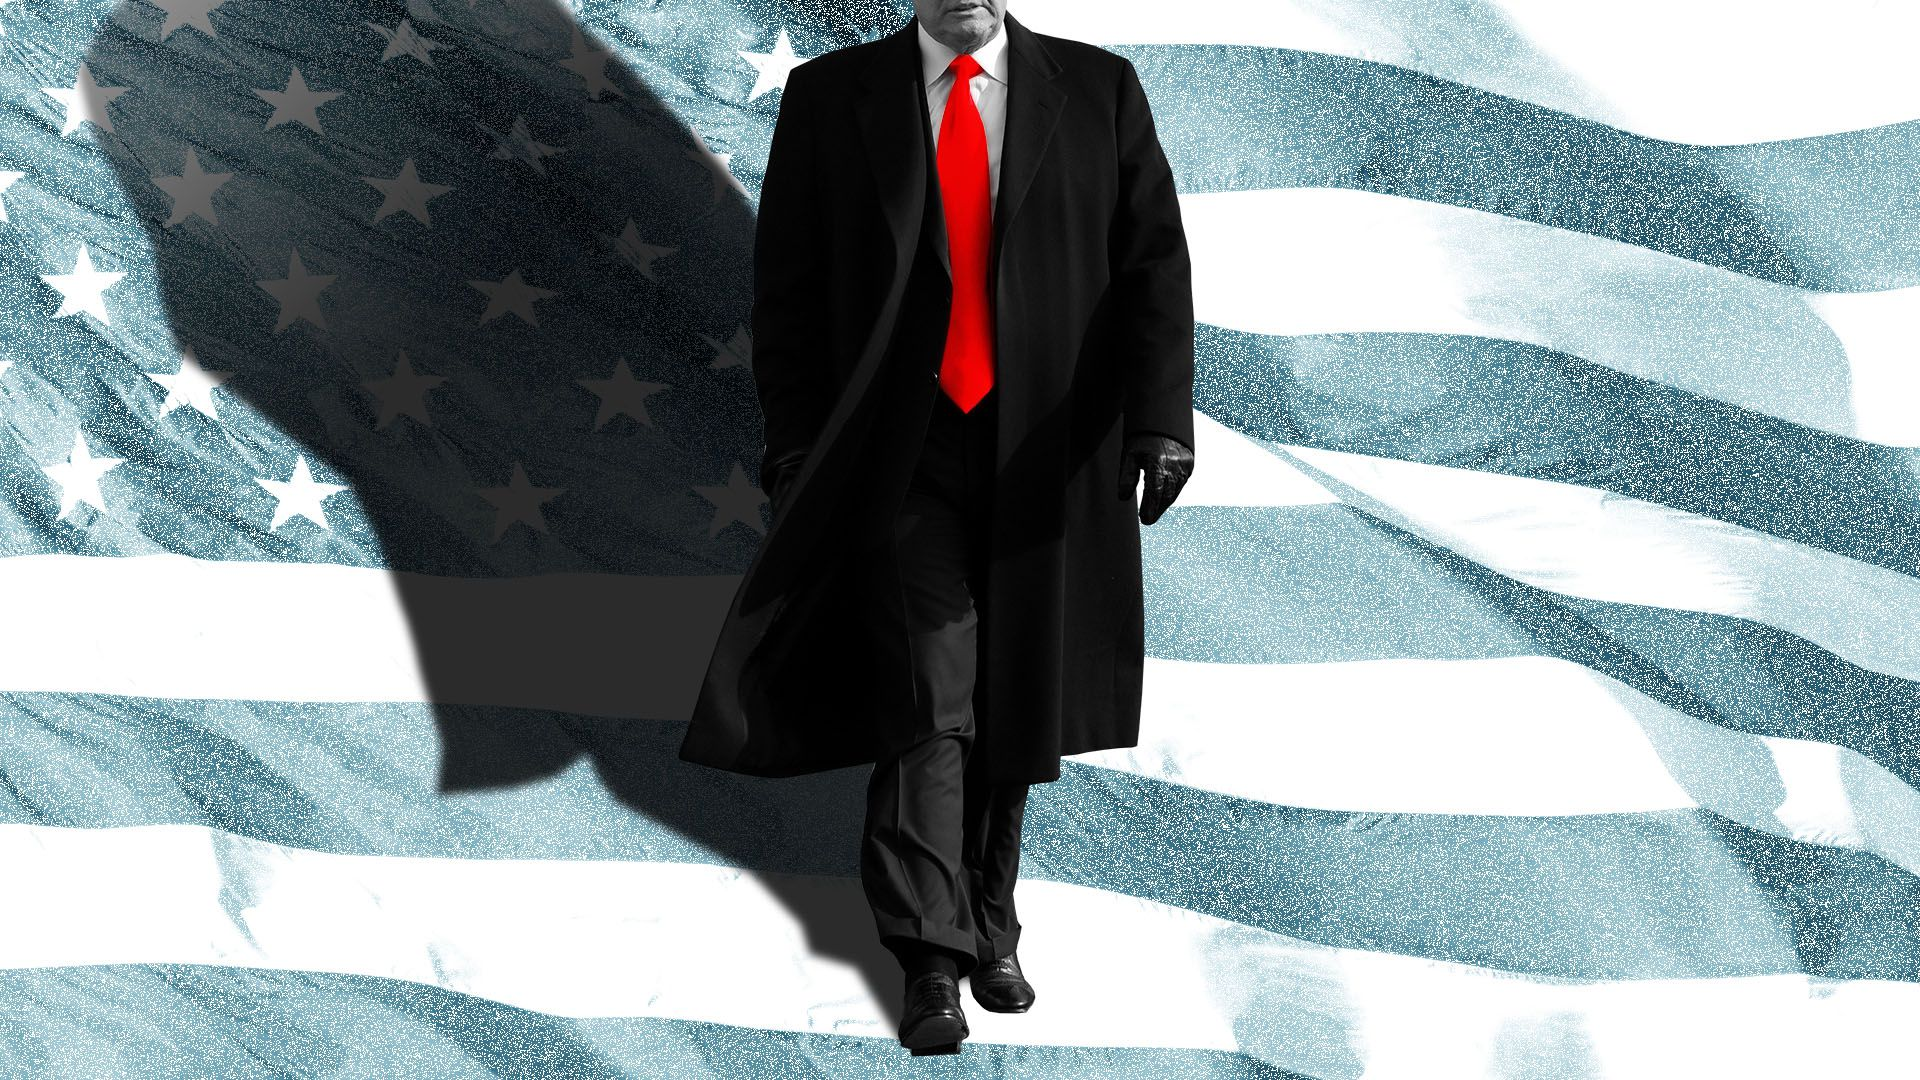 Illustration of President Trump casting shadow over U.S. flag